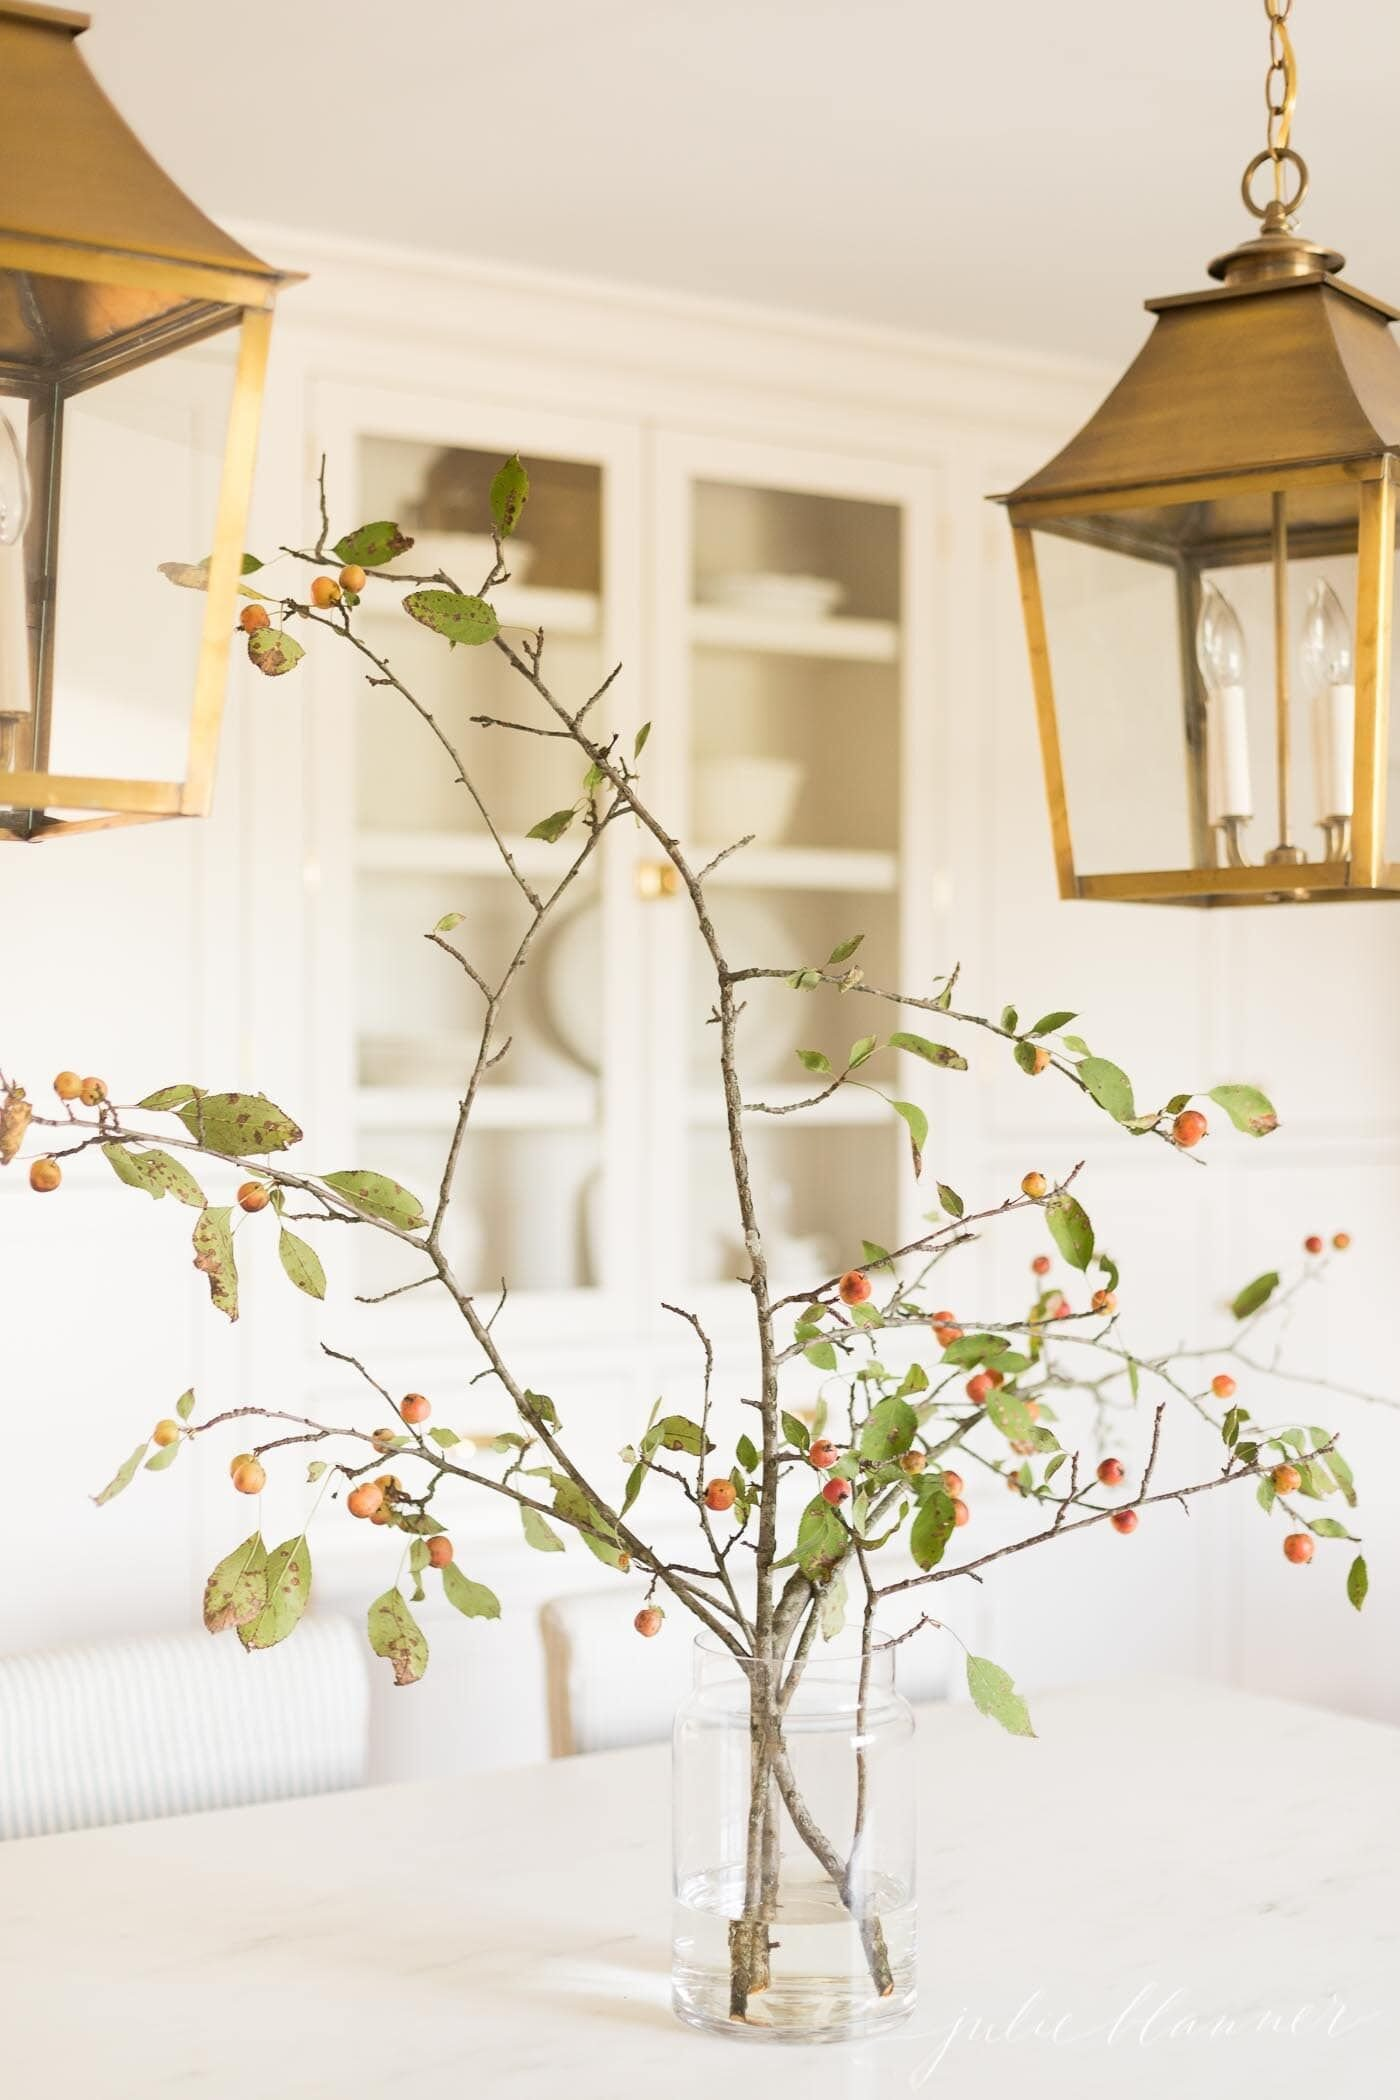 Fall branches with berries in a glass vase, in an all white kitchen, brass lanterns above.